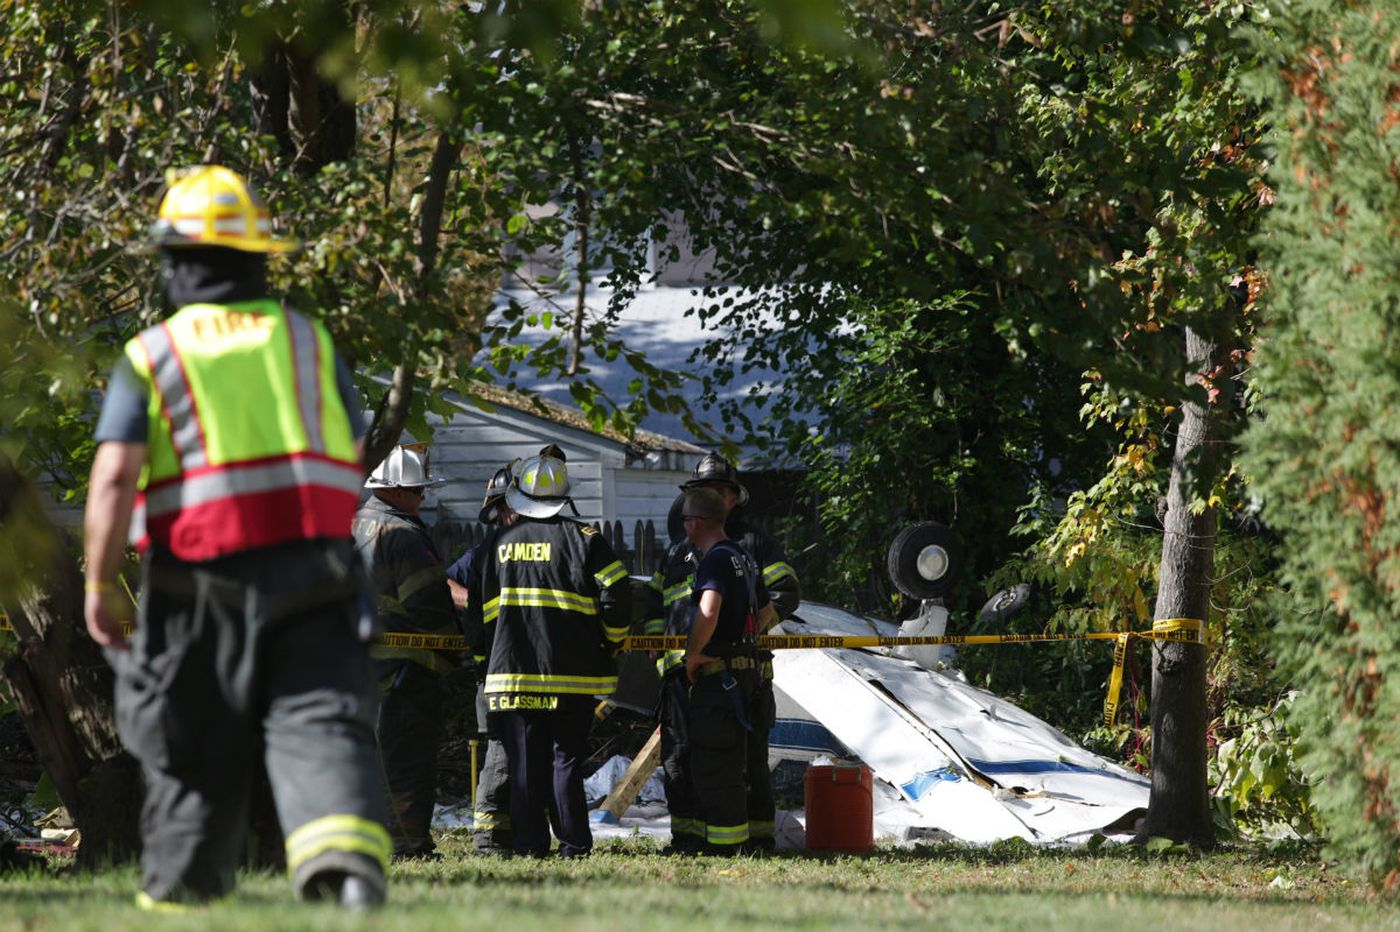 Plane lost power before crashing in South Jersey neighborhood